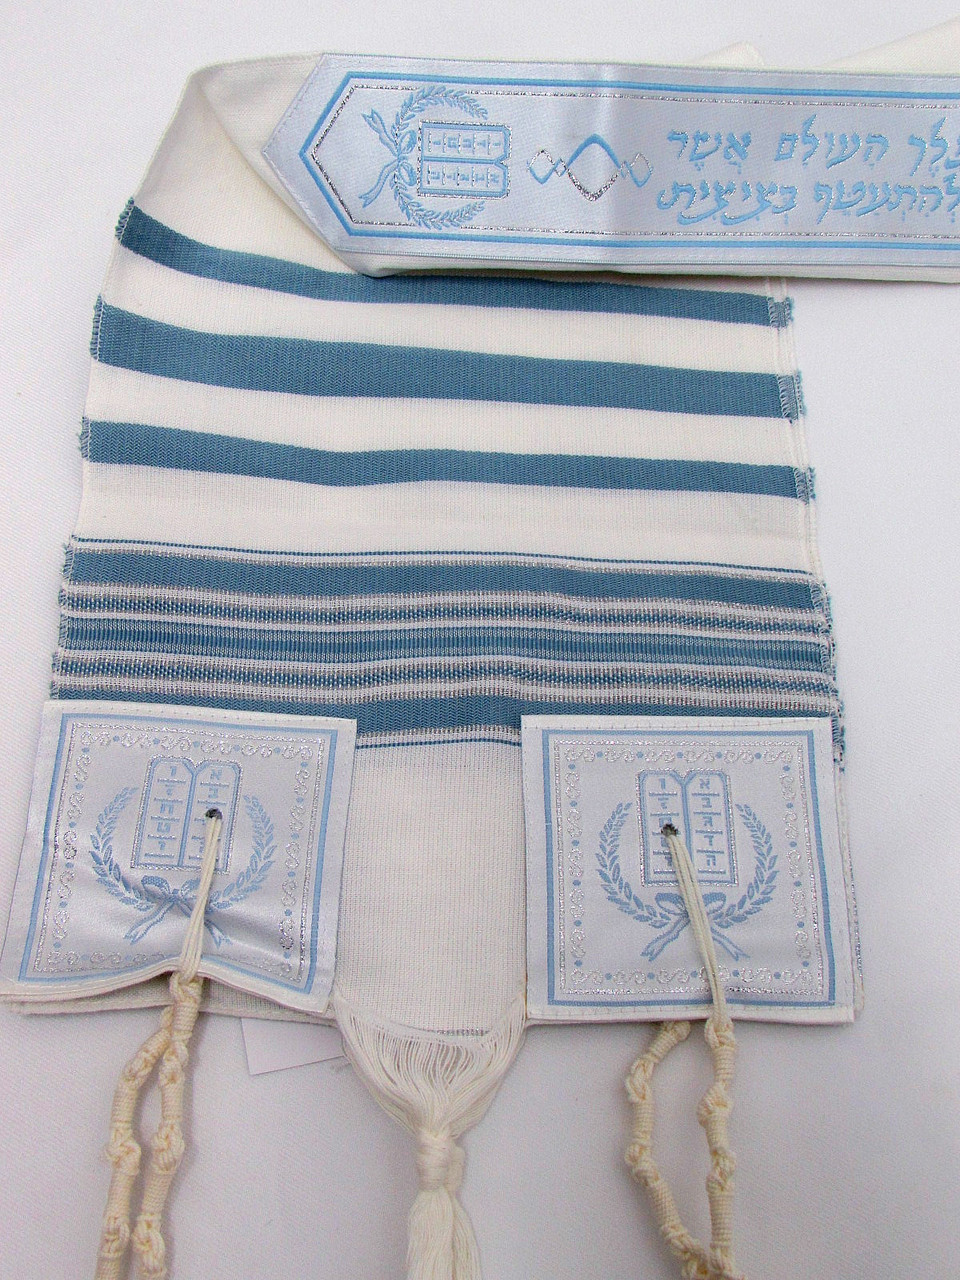 Size 8 Hevron Cotton Blue & Silver Striped Children's Tallit